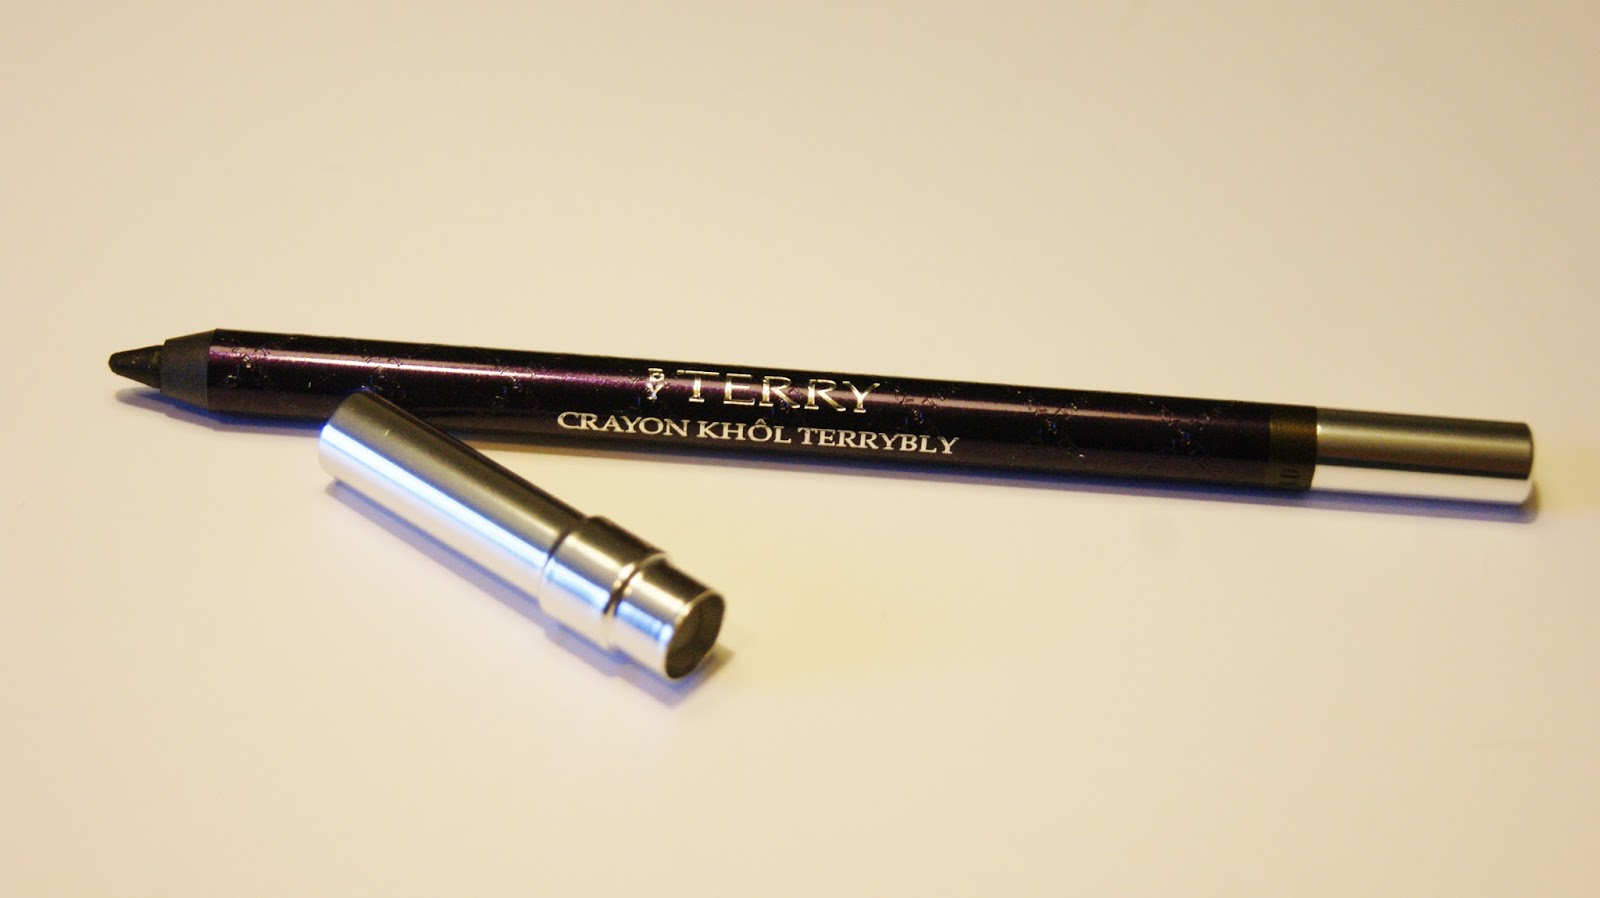 By Terry Crayon Khol Terrybly Bronze Generation